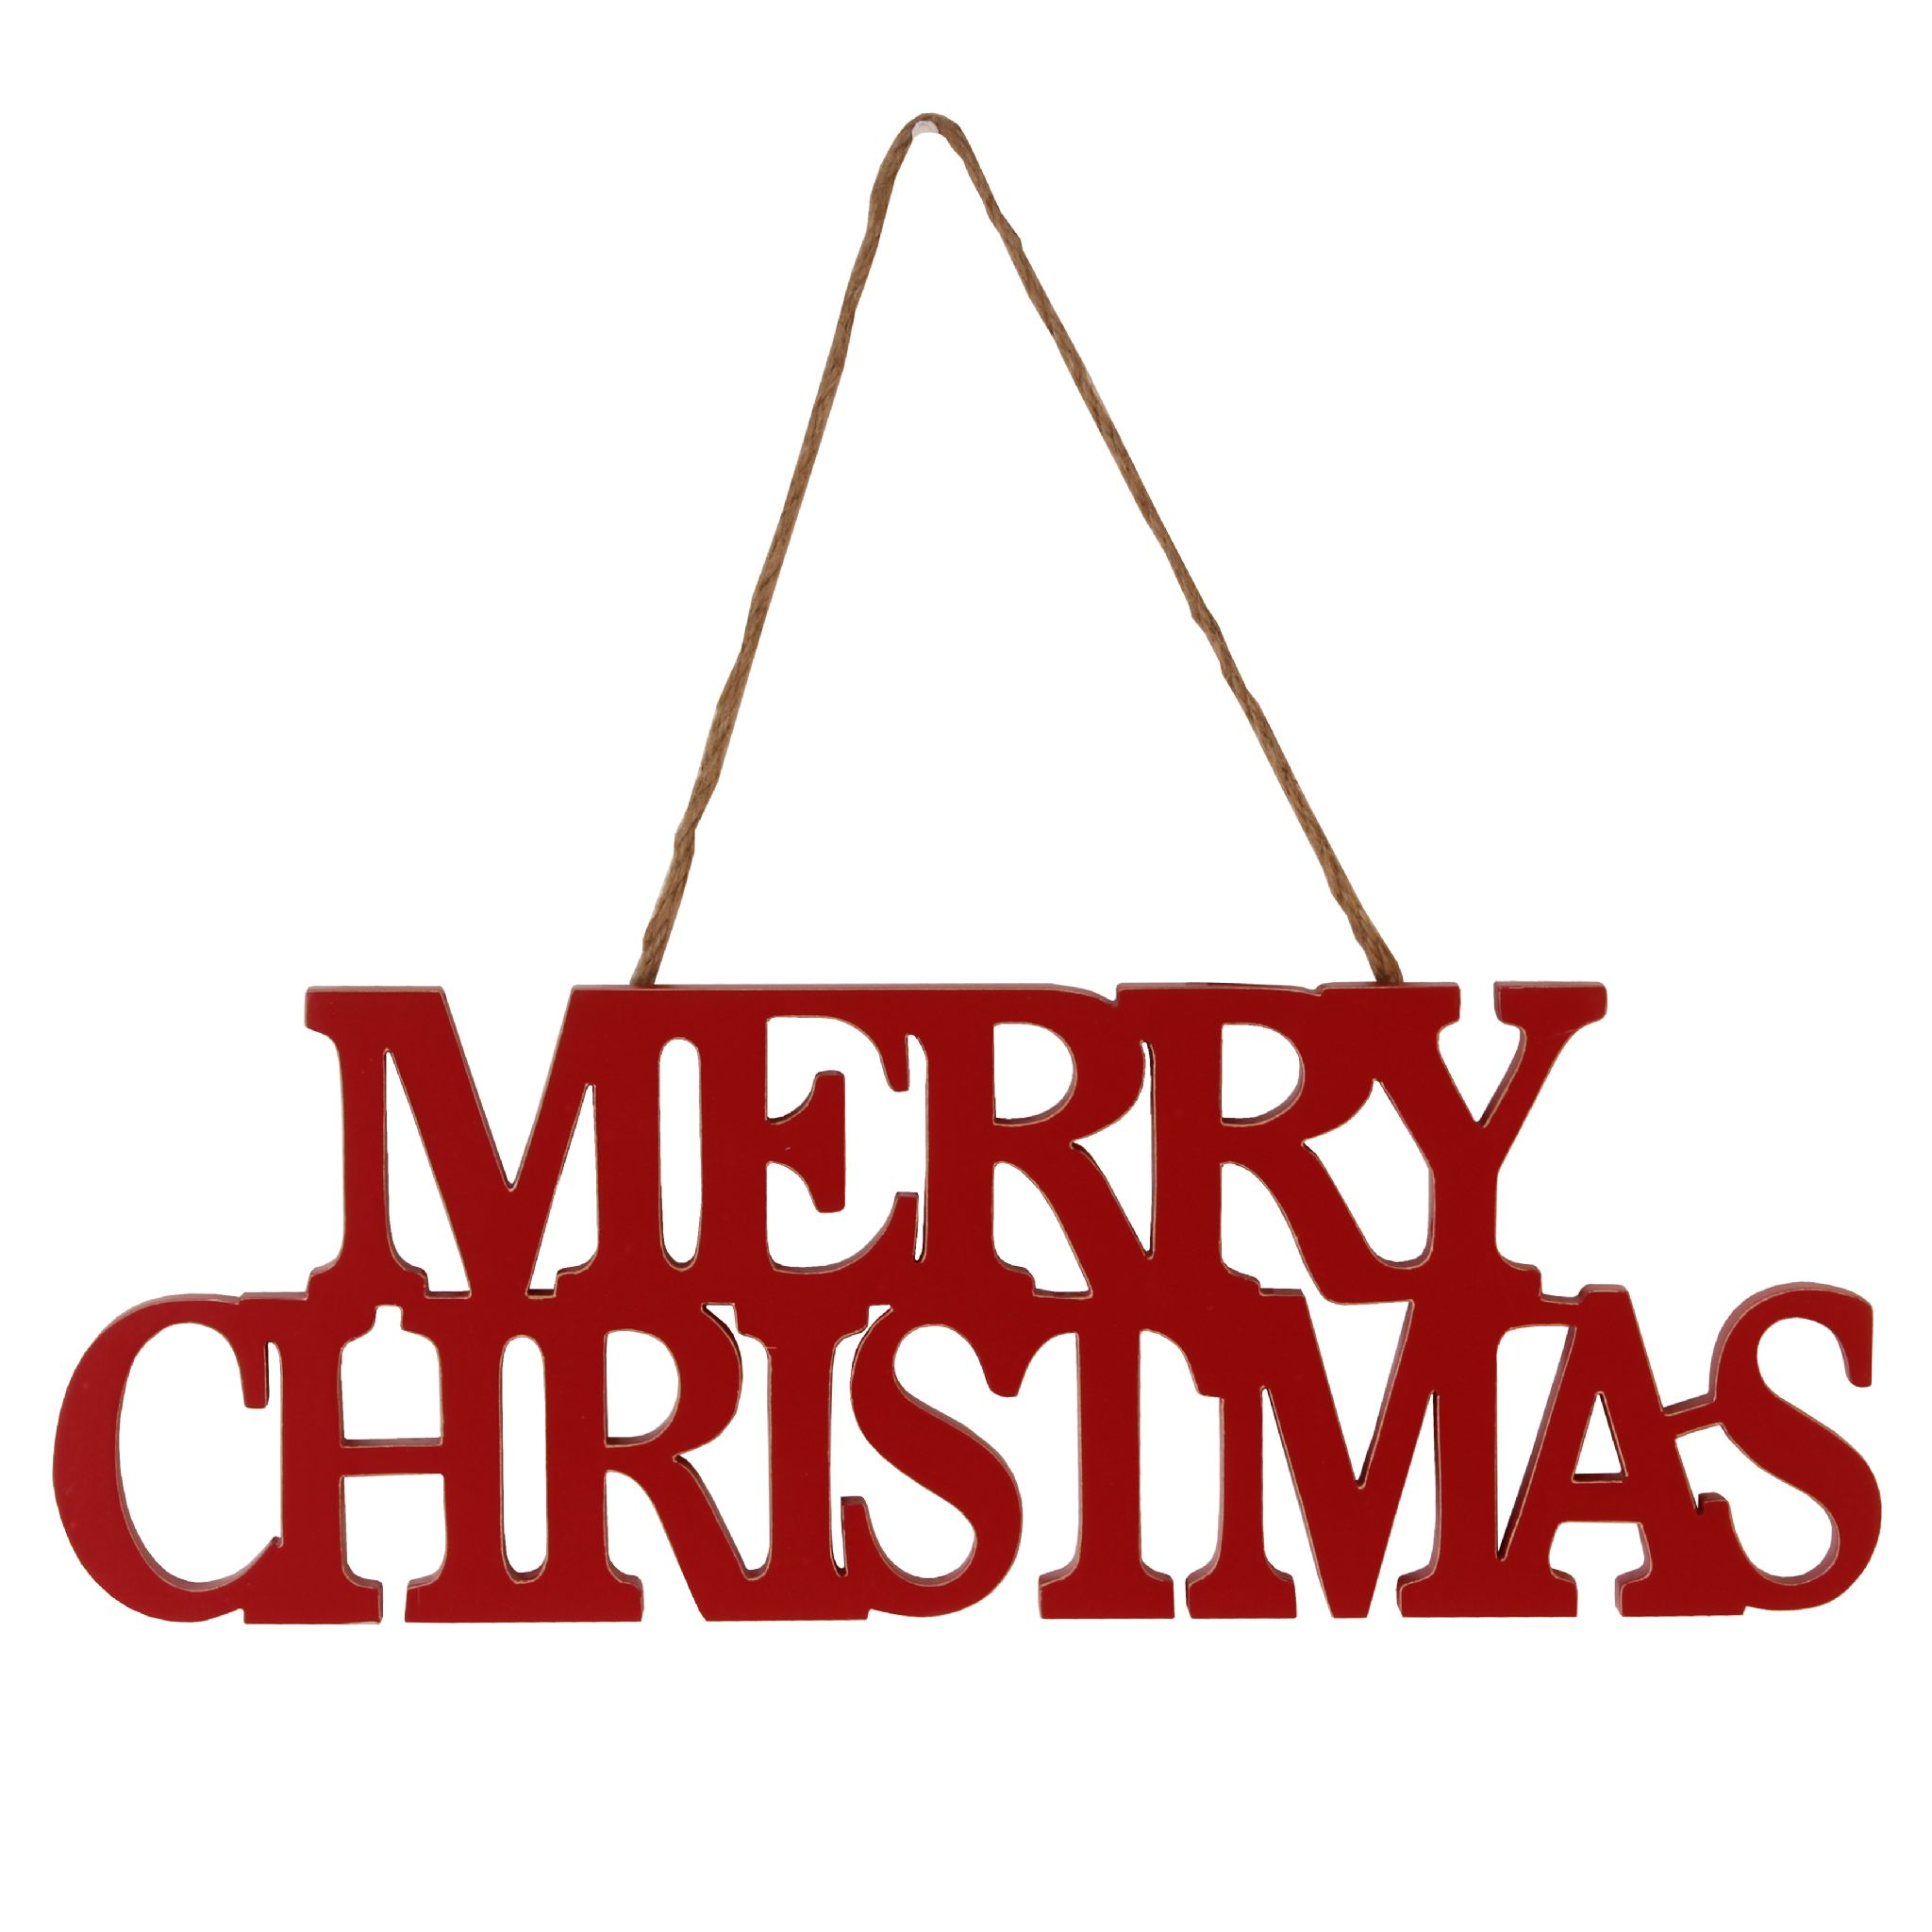 Red Wooden Hanging Merry Christmas Sign - Nordic Style Christmas ...